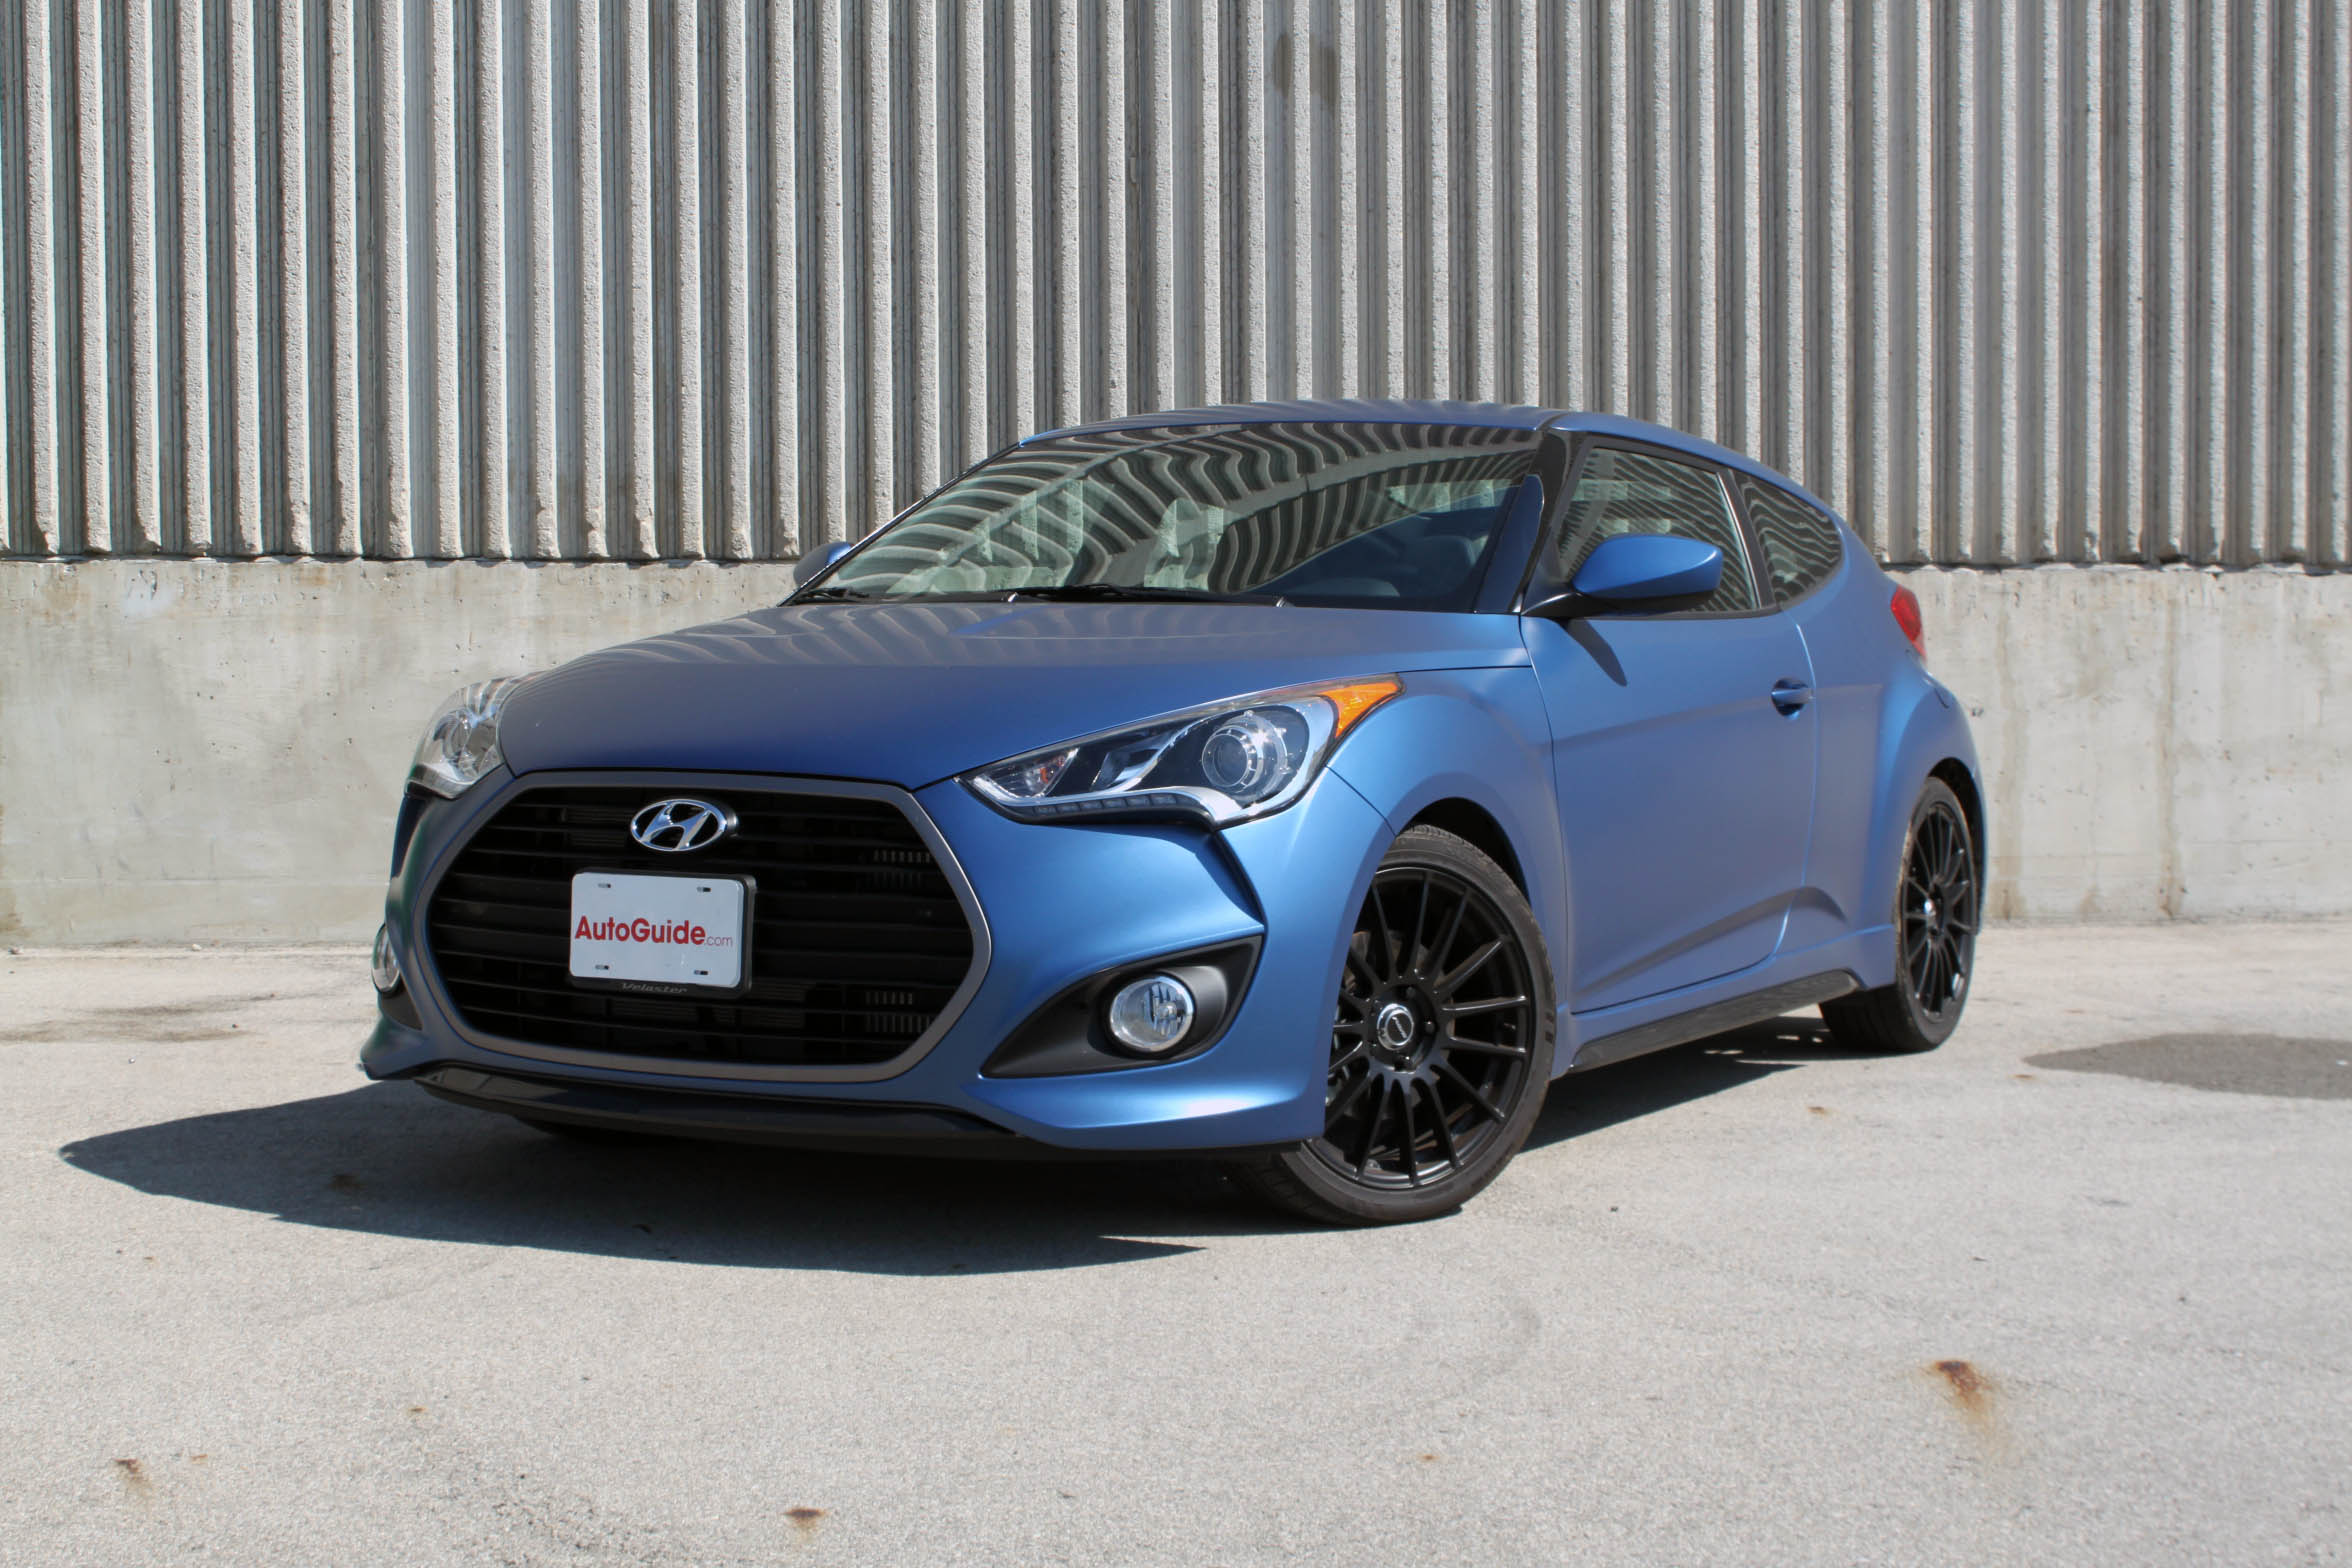 2016 Hyundai Veloster Turbo Rally Edition Review - AutoGuide.com